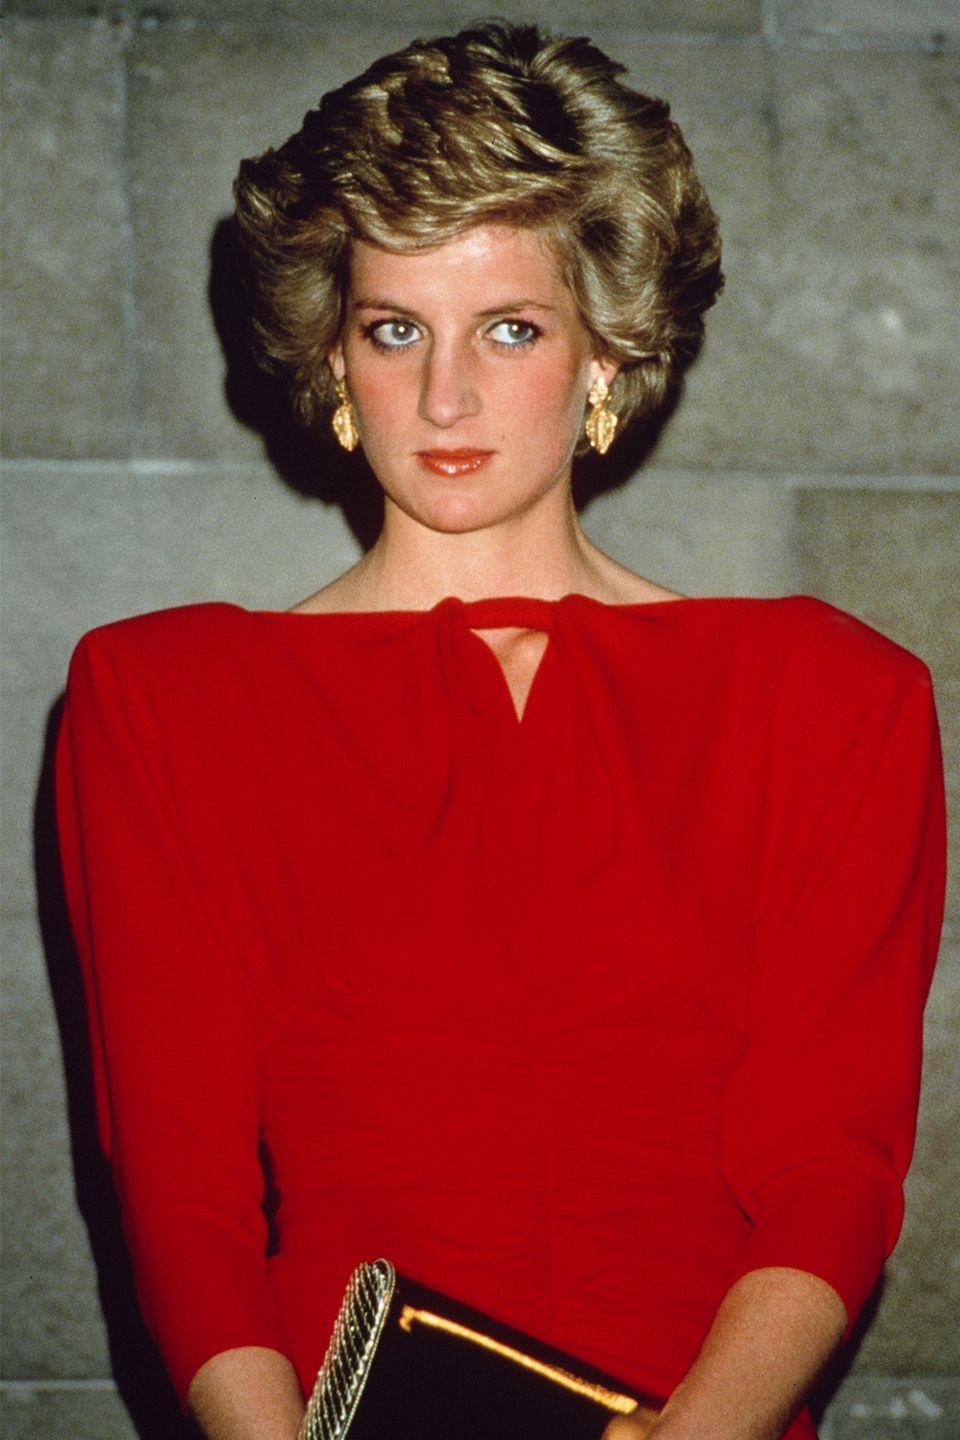 <p>Veering away from her side-part, Diana showed off a new style while attending a state reception while visiting Melbourne.</p>